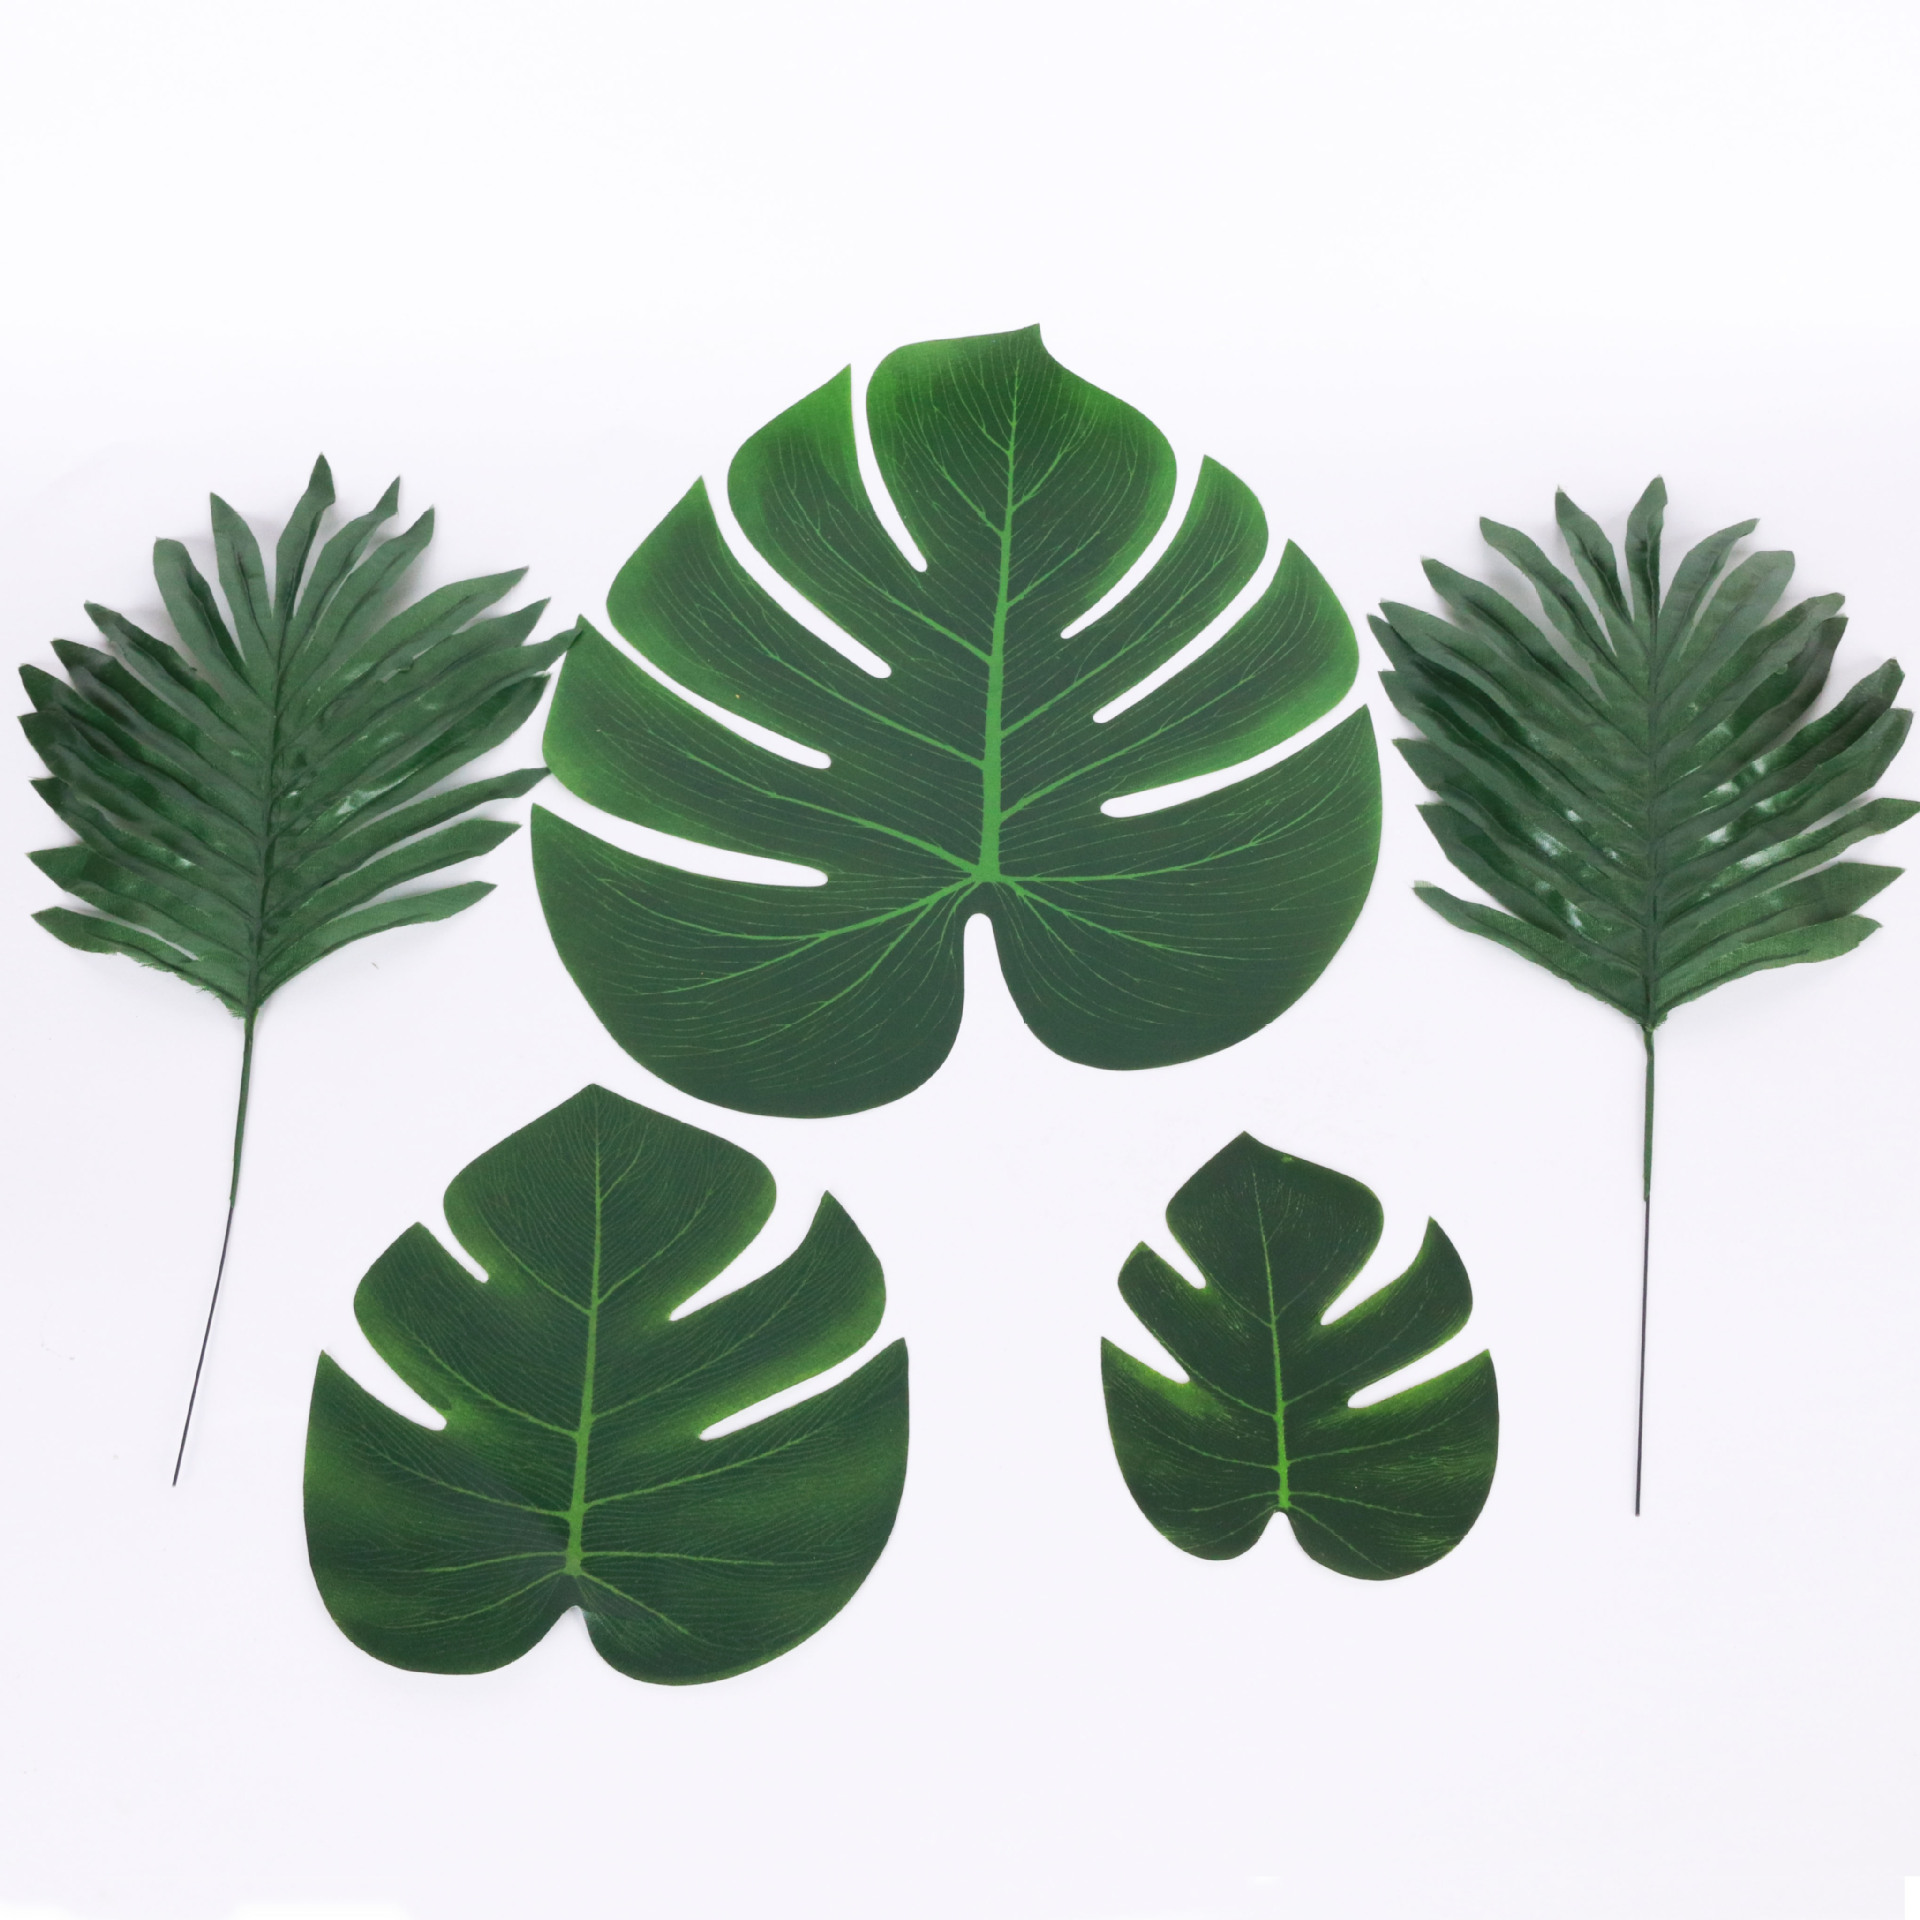 Green Color Tropical Iron Leaves Hibiscus With Stem Leaf Set Party Cocktail Reception Table Beach Decoration Set